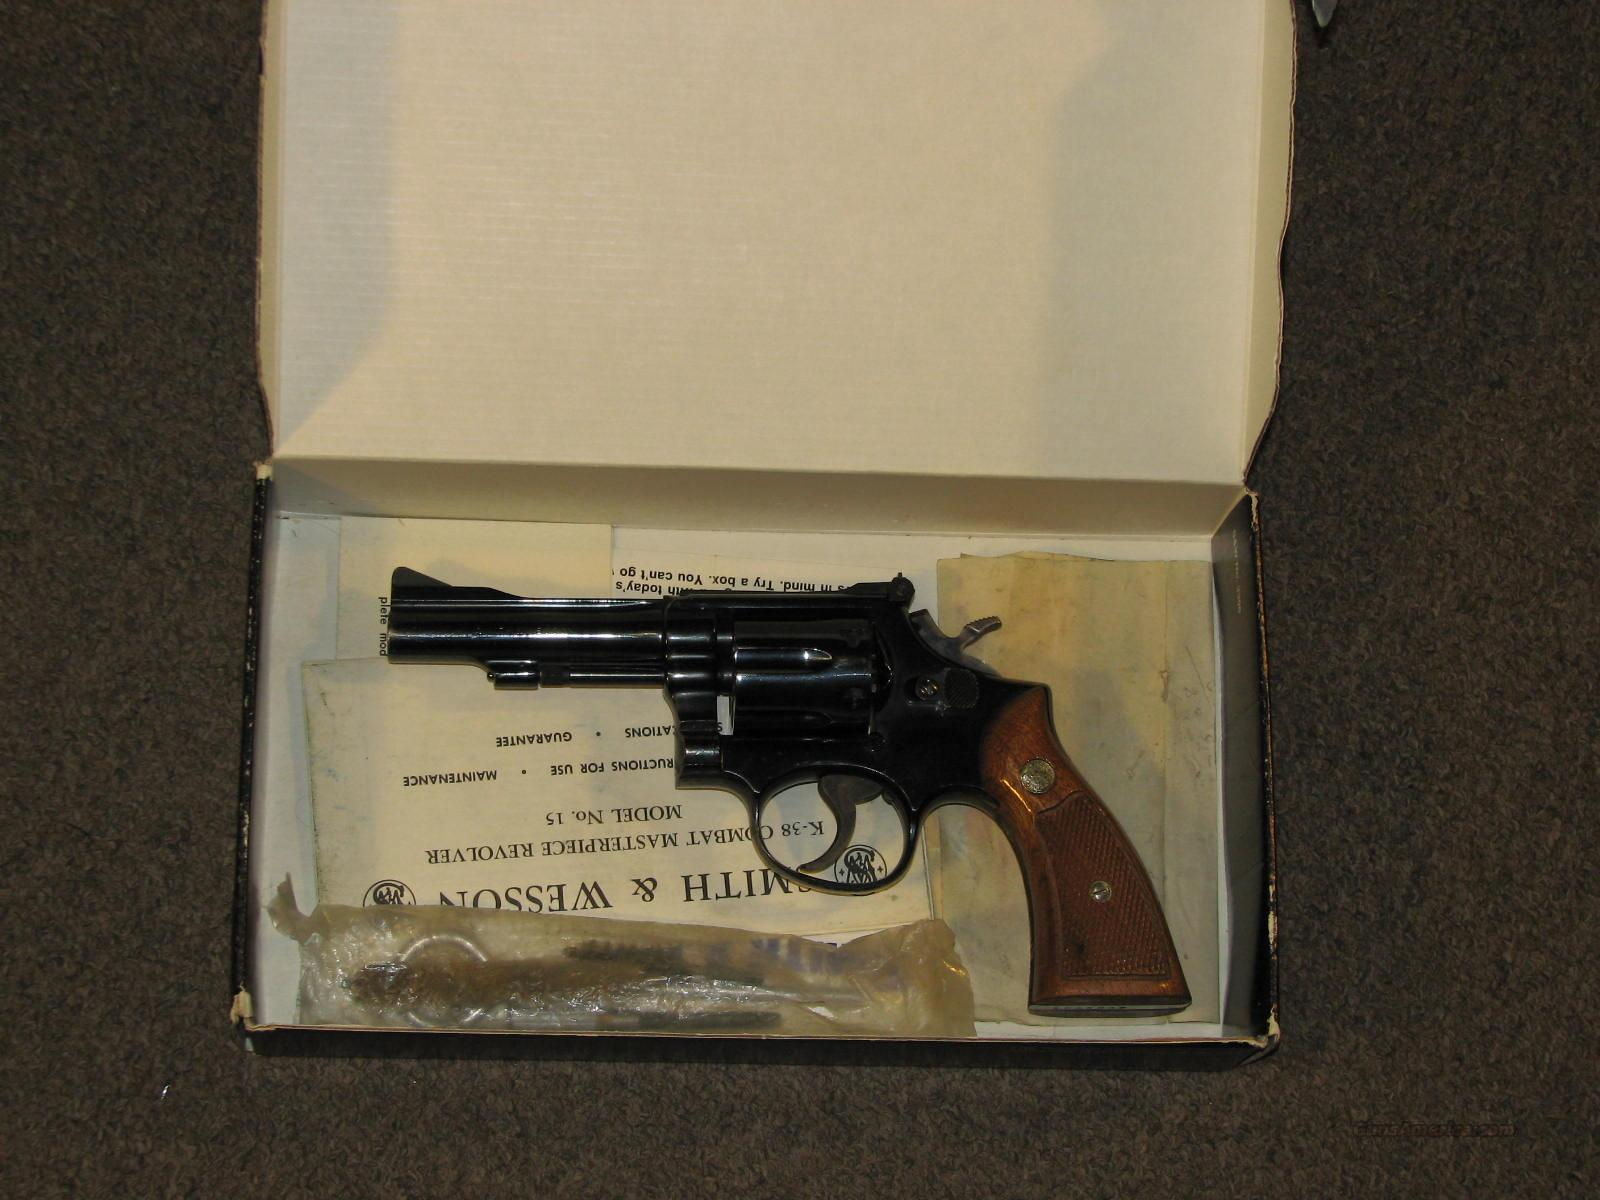 SMITH & WESSON 15-3 .38 SPECIAL w/ BOX  Guns > Pistols > Smith & Wesson Revolvers > Full Frame Revolver